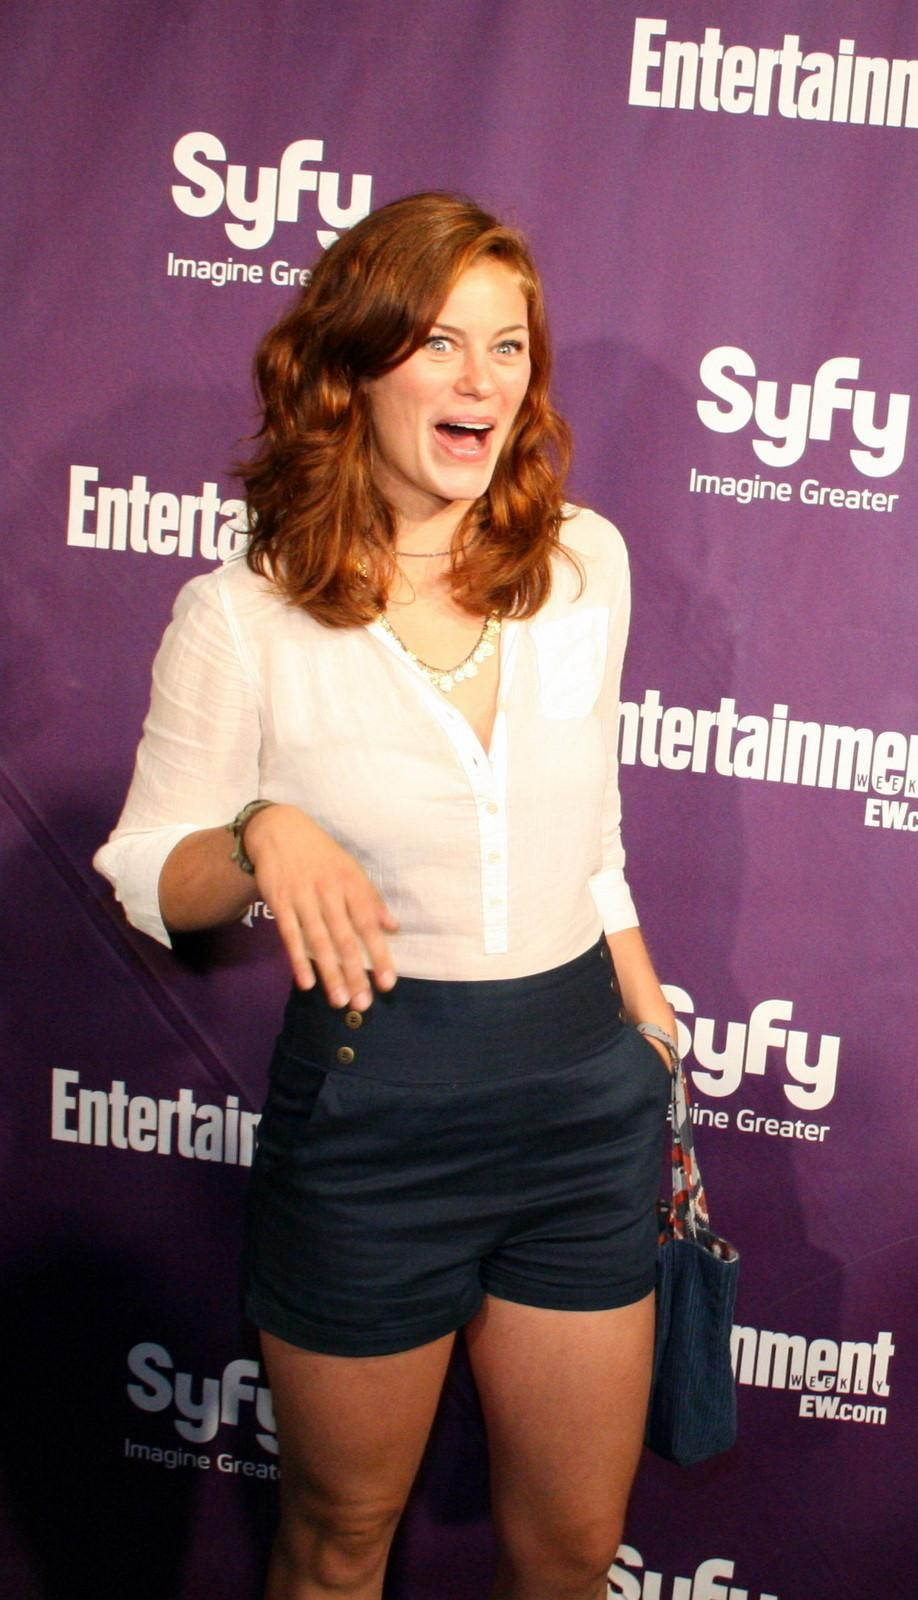 cassidy freeman imdbcassidy freeman smallville, cassidy freeman instagram, cassidy freeman, cassidy freeman once upon a time, cassidy freeman imdb, cassidy freeman twitter, cassidy freeman wiki, cassidy freeman wikipedia, cassidy freeman listal, cassidy freeman husband, cassidy freeman measurements, cassidy freeman bikini, cassidy freeman nudography, cassidy freeman married